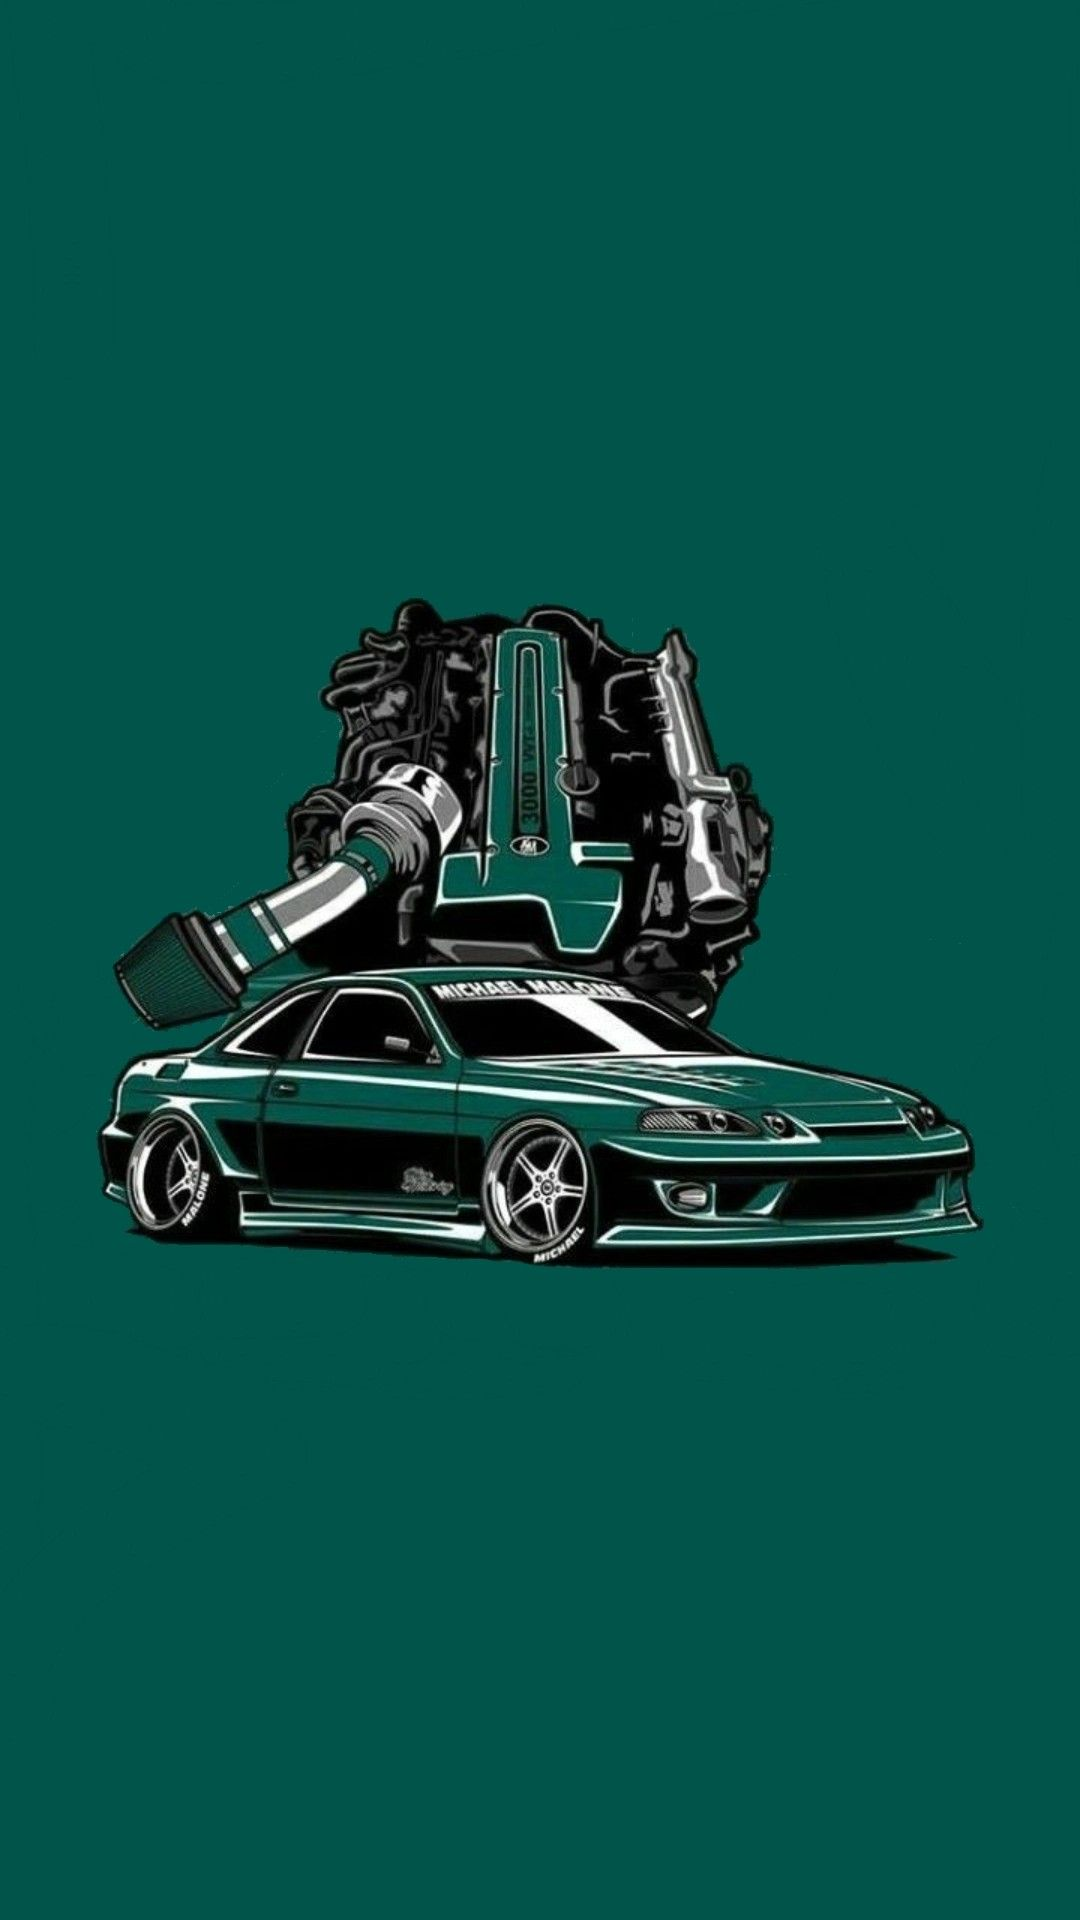 Toyota Soarer With Images Car Wallpapers Car Drawings